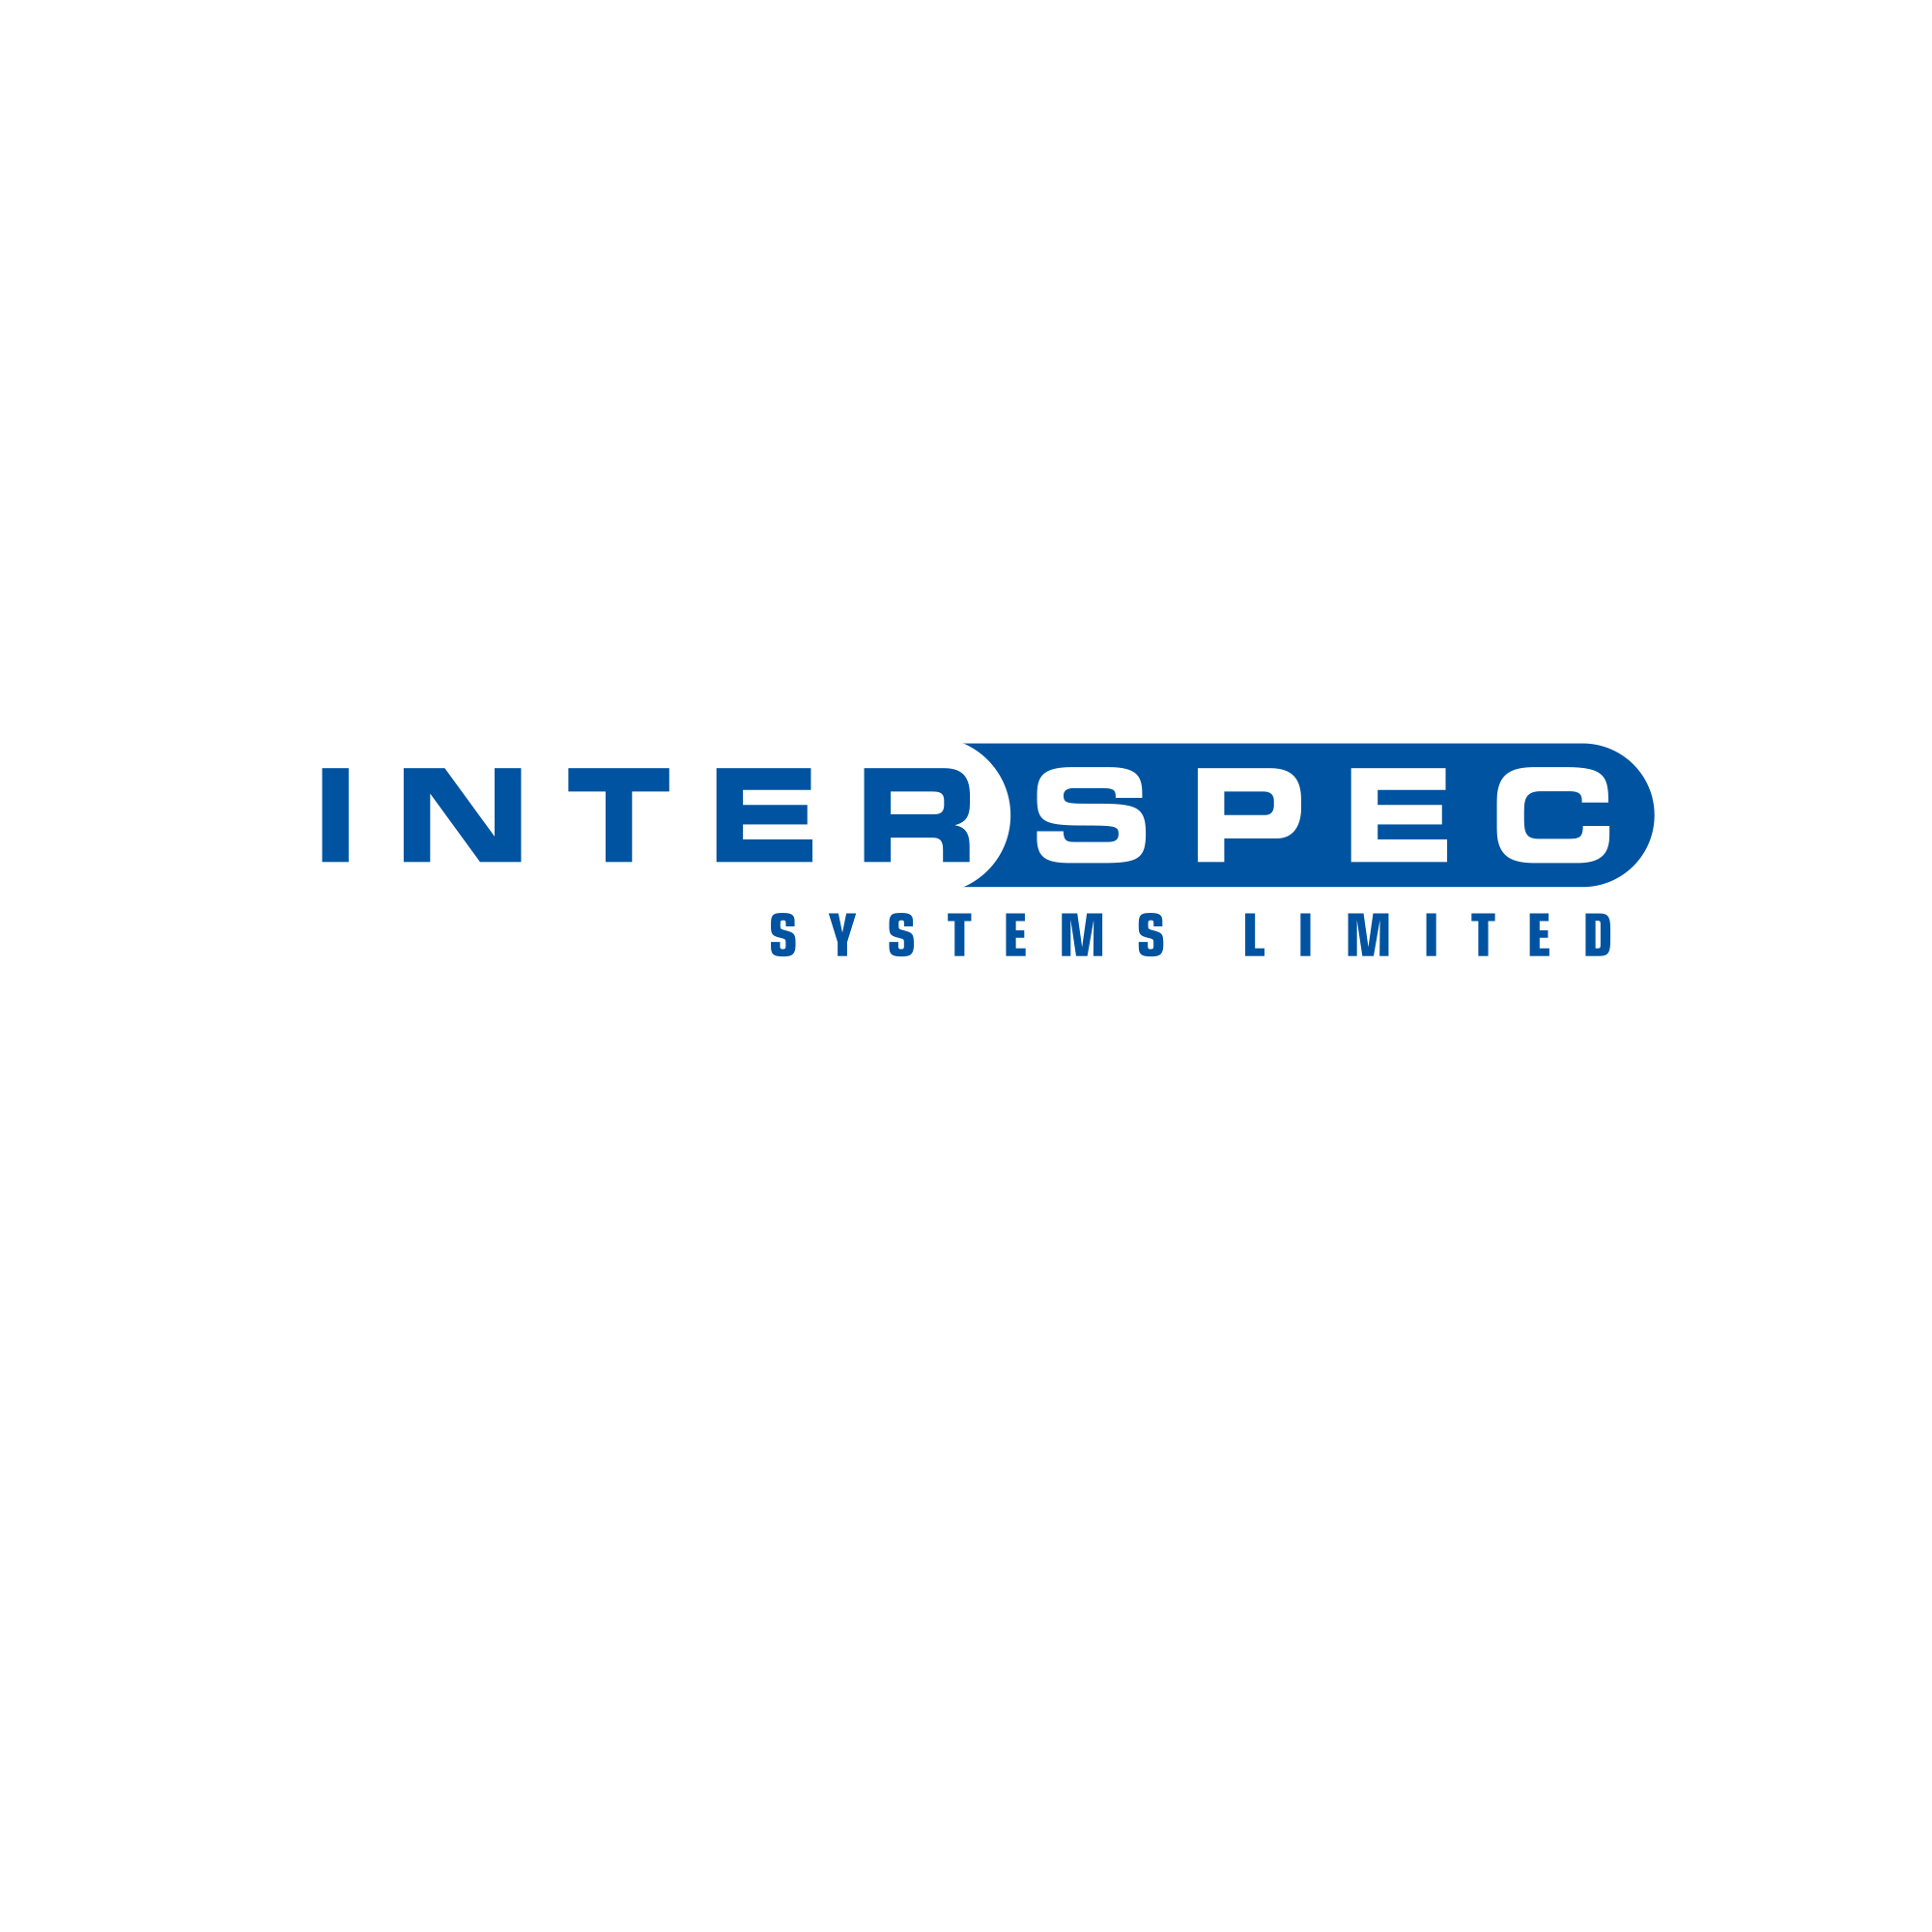 DSC Identity - Interspec System Limited